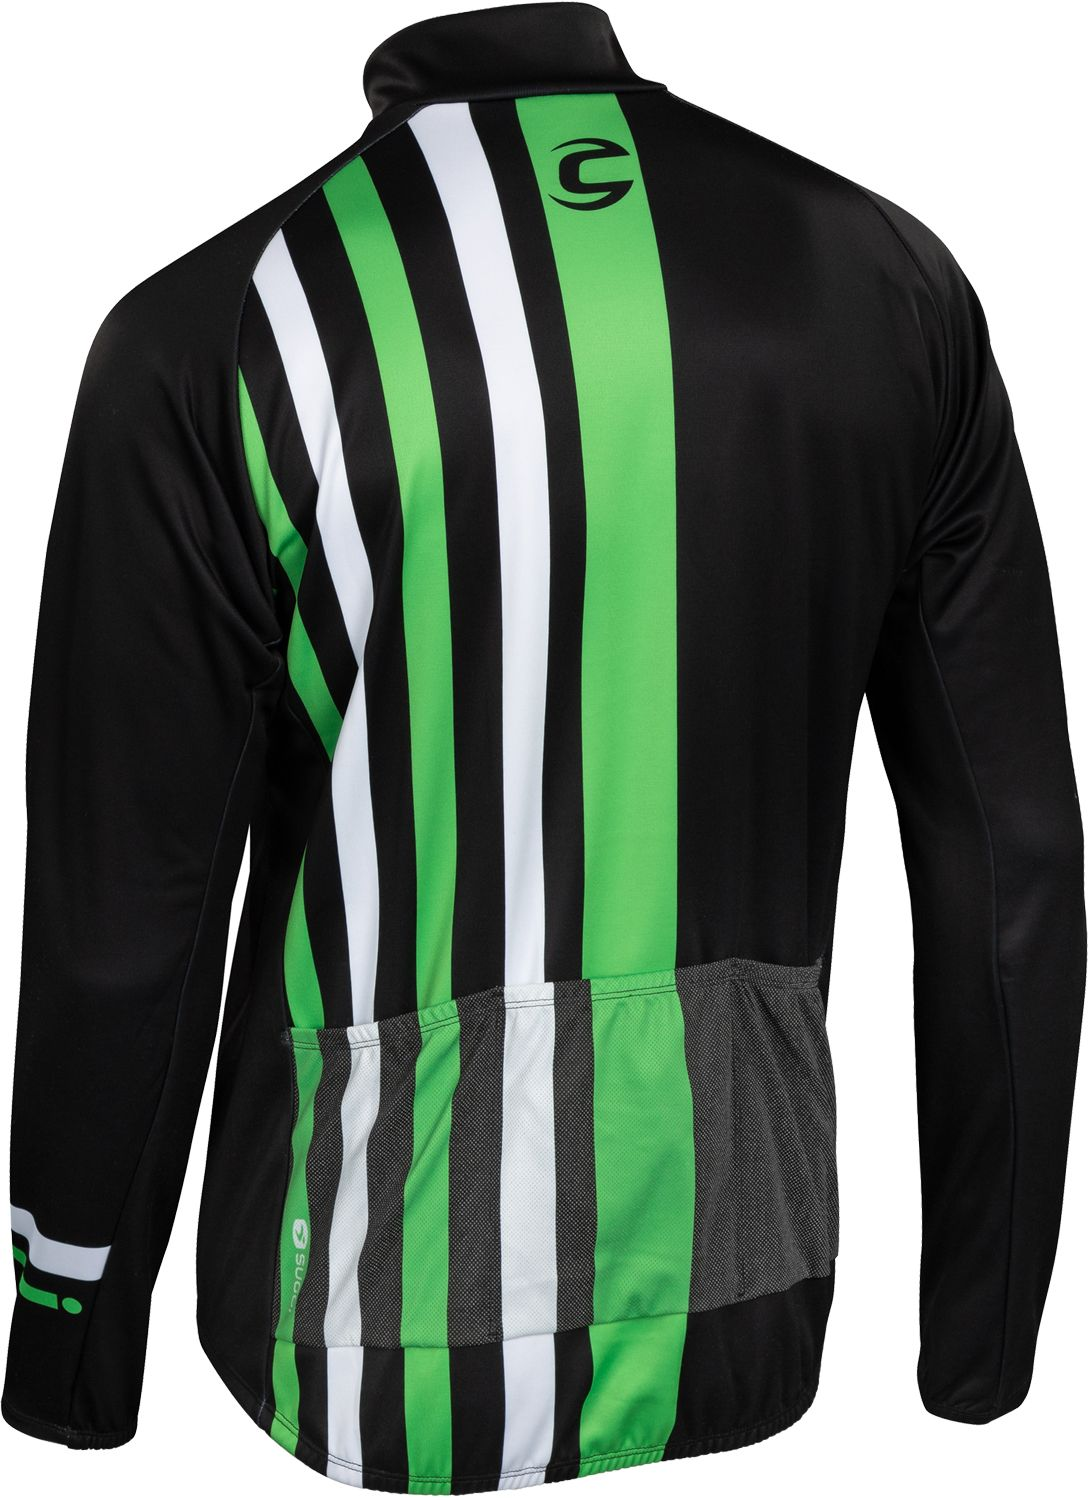 7c457e214 Cannondale EVOLUTION ZAP long sleeve cycling jersey black green by Sugoi.  Next